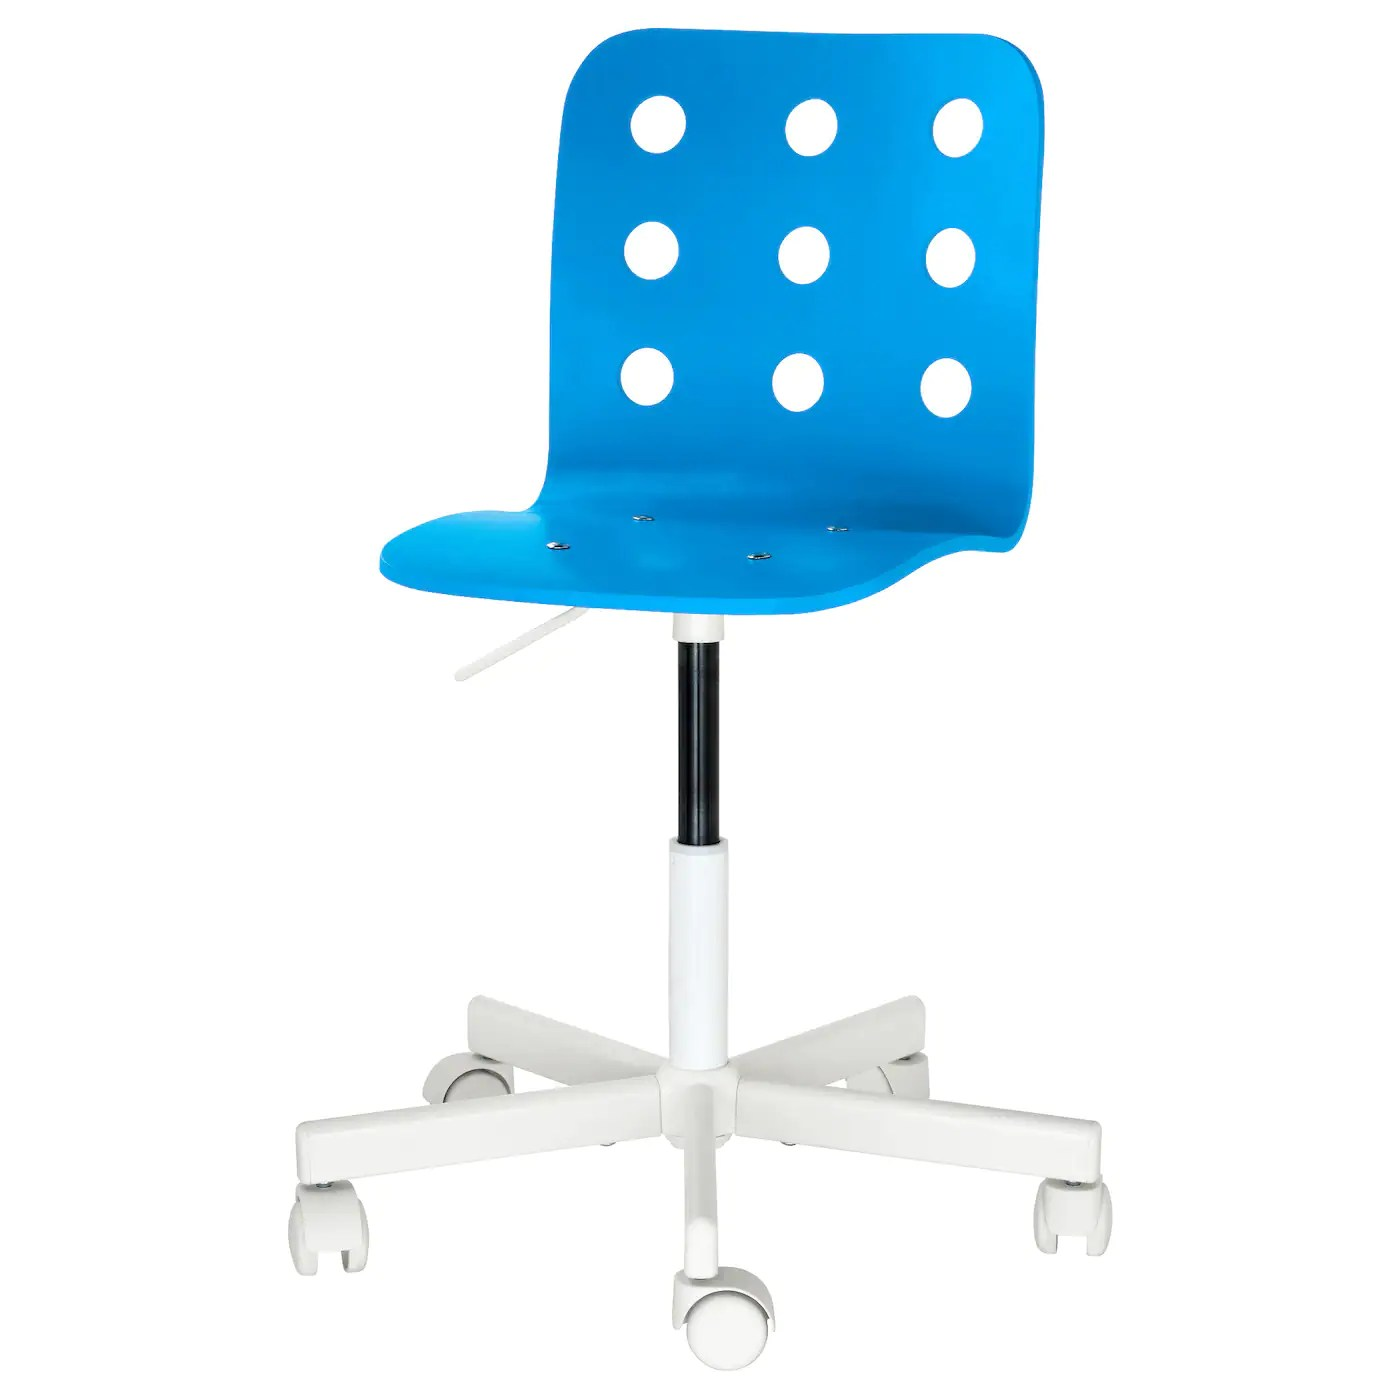 ikea toddler chair monsters inc jules children 39s desk blue white